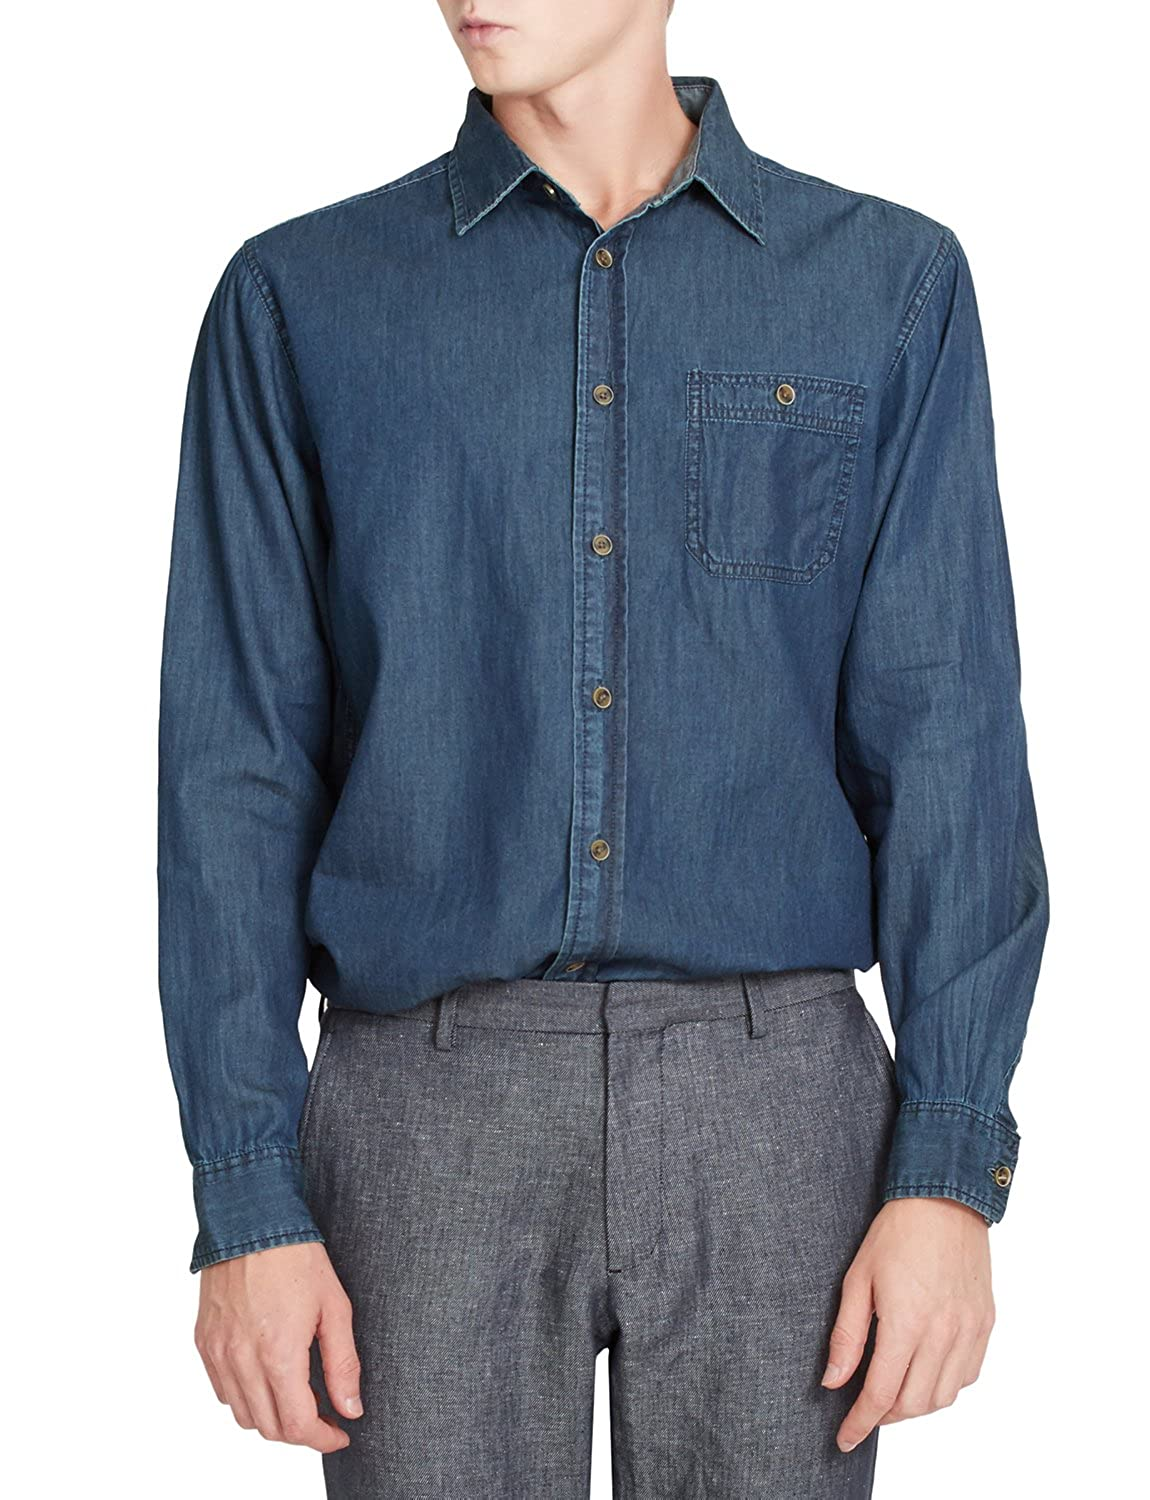 1920s Mens Suits LE3NO PREMIUM Mens Vintage Long Sleeve Button Down Work Denim Shirt $43.54 AT vintagedancer.com